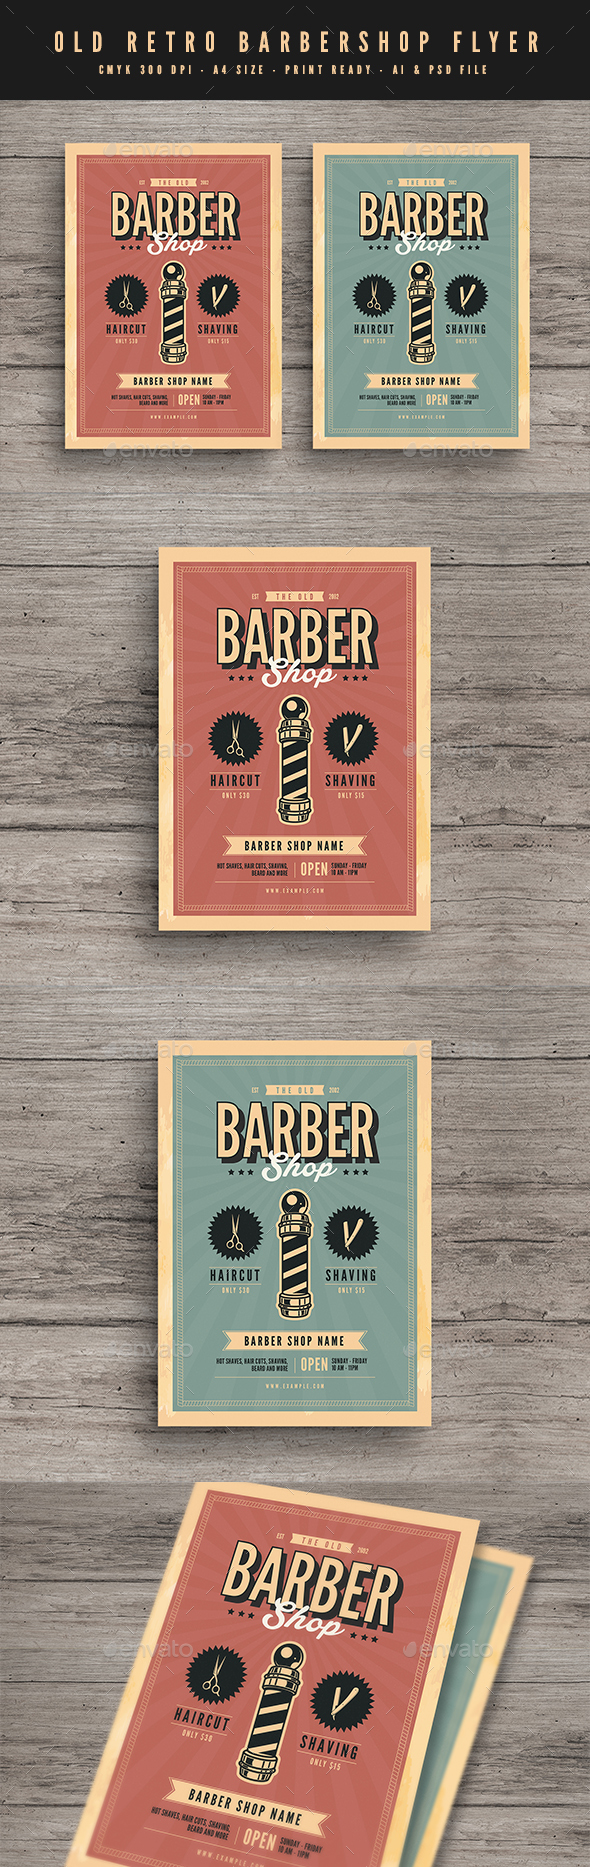 GraphicRiver Old Retro Barbershop Flyer 21125134